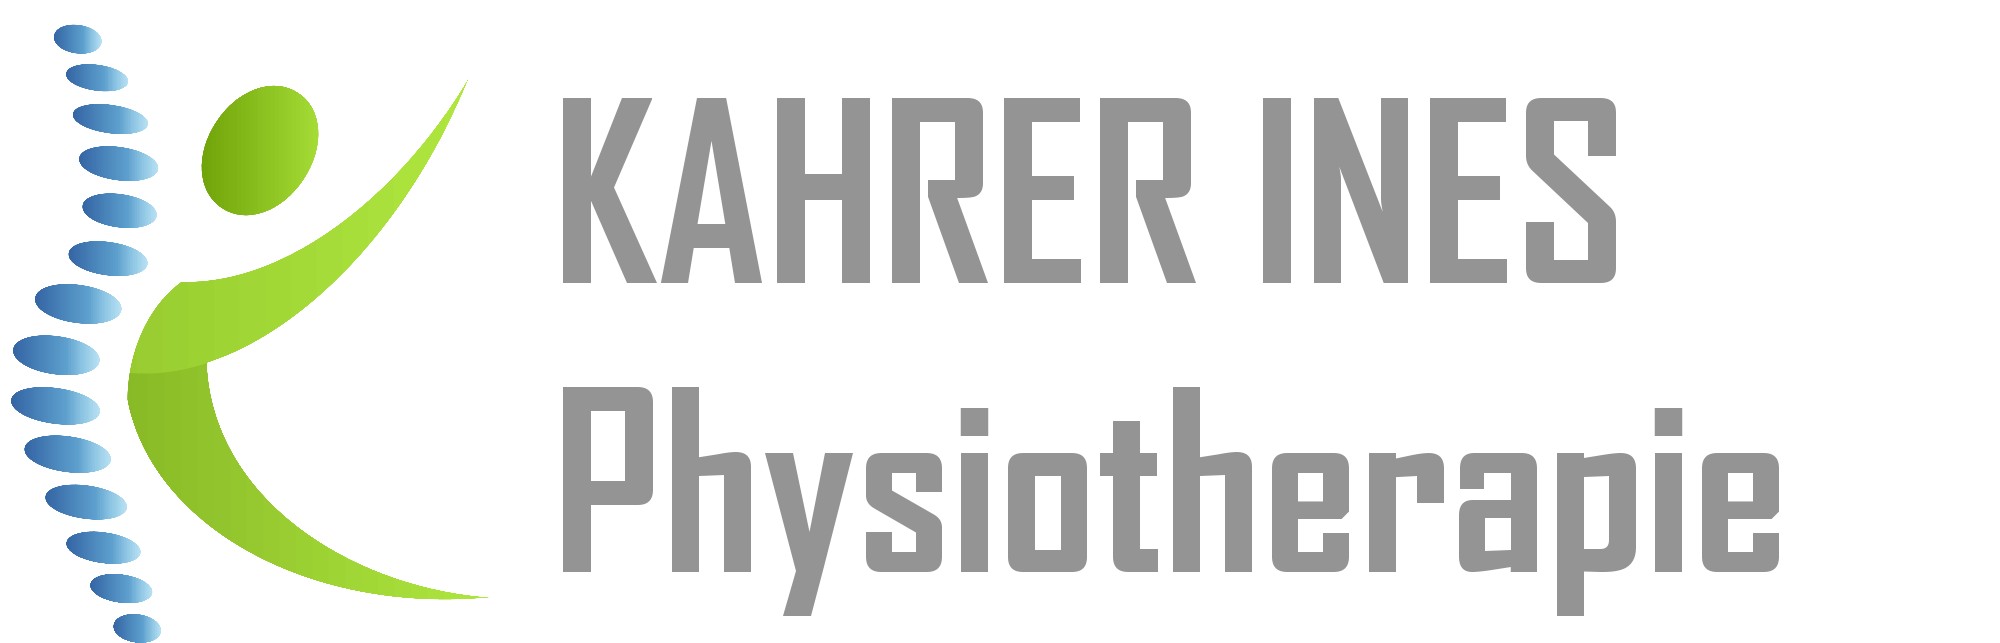 Kahrer Ines Physiotherapie